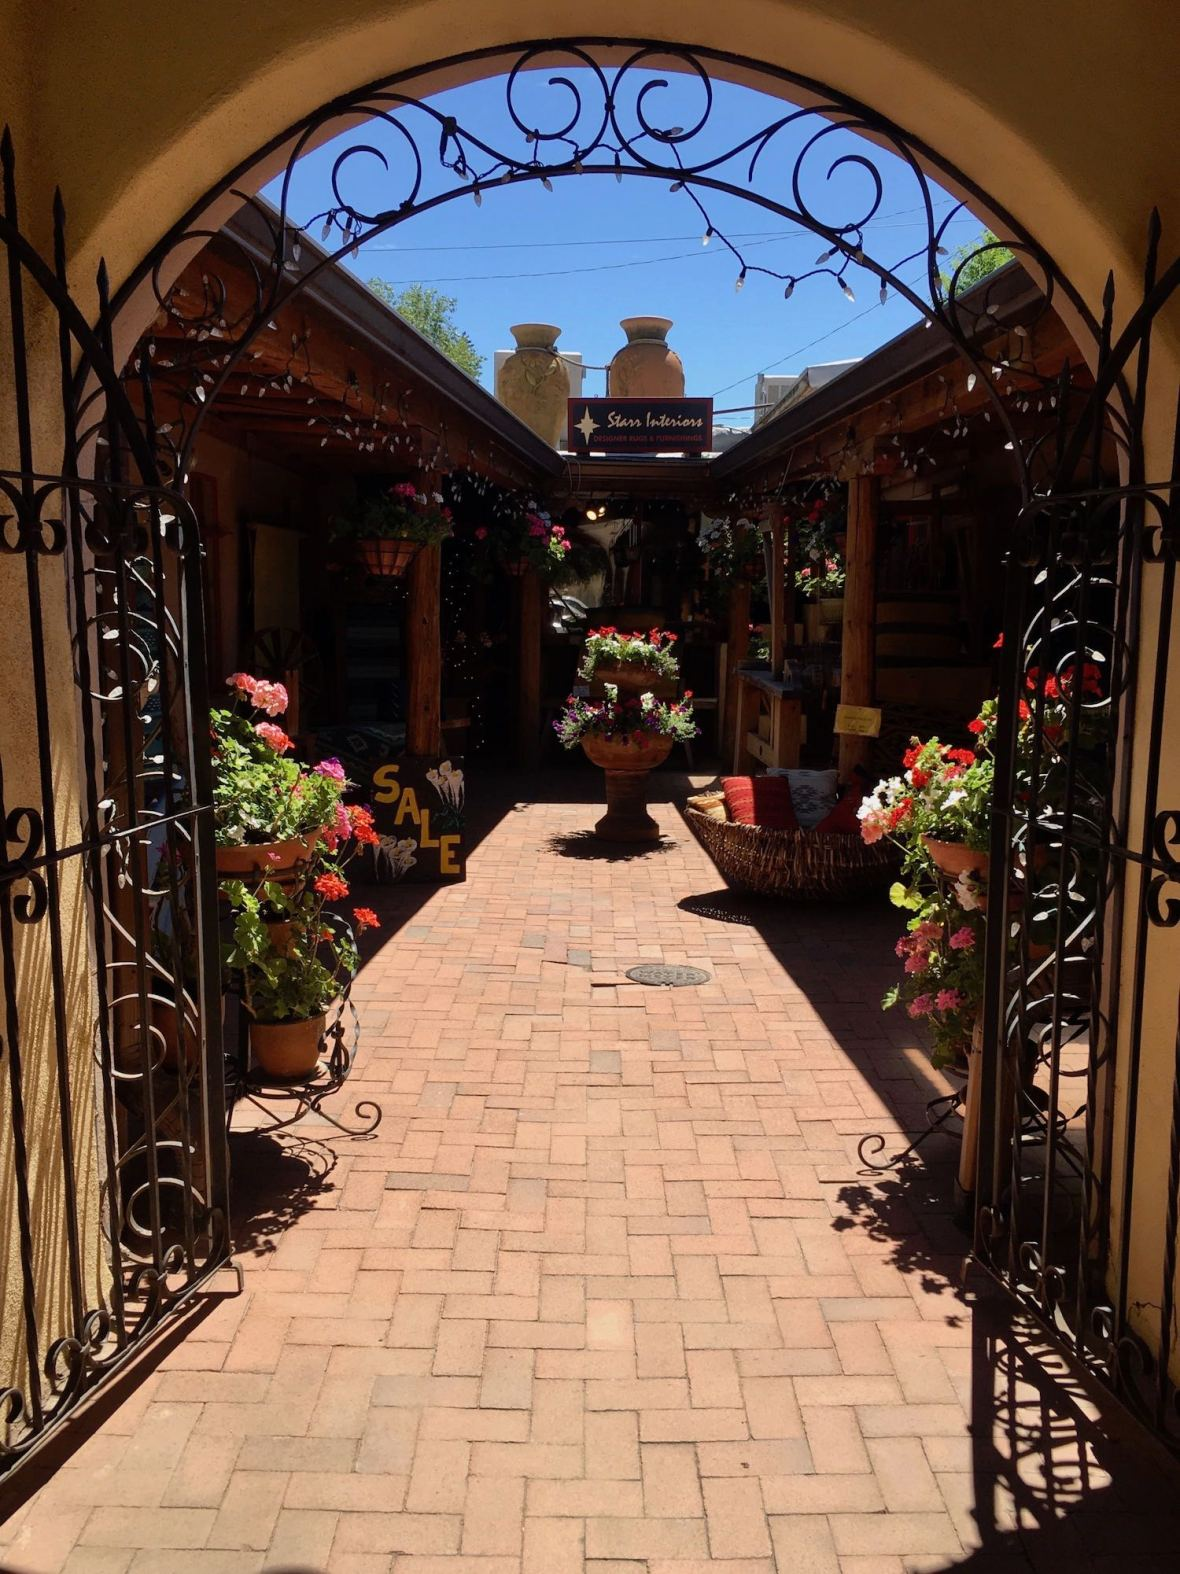 Flower pots and arch in Taos, New Mexico courtyard